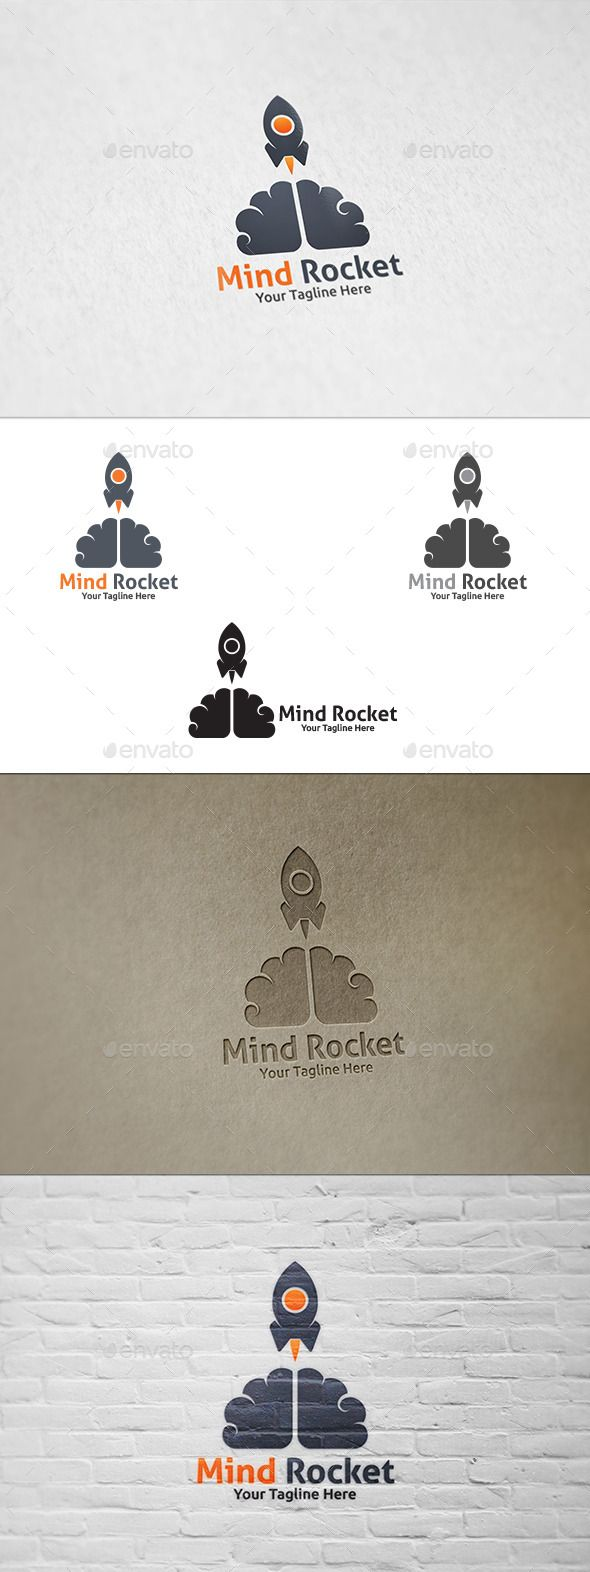 Mind Rocket  - Logo Design Template Vector #logotype Download it here: http://graphicriver.net/item/mind-rocket-logo-template/8945405?s_rank=485?ref=nexion